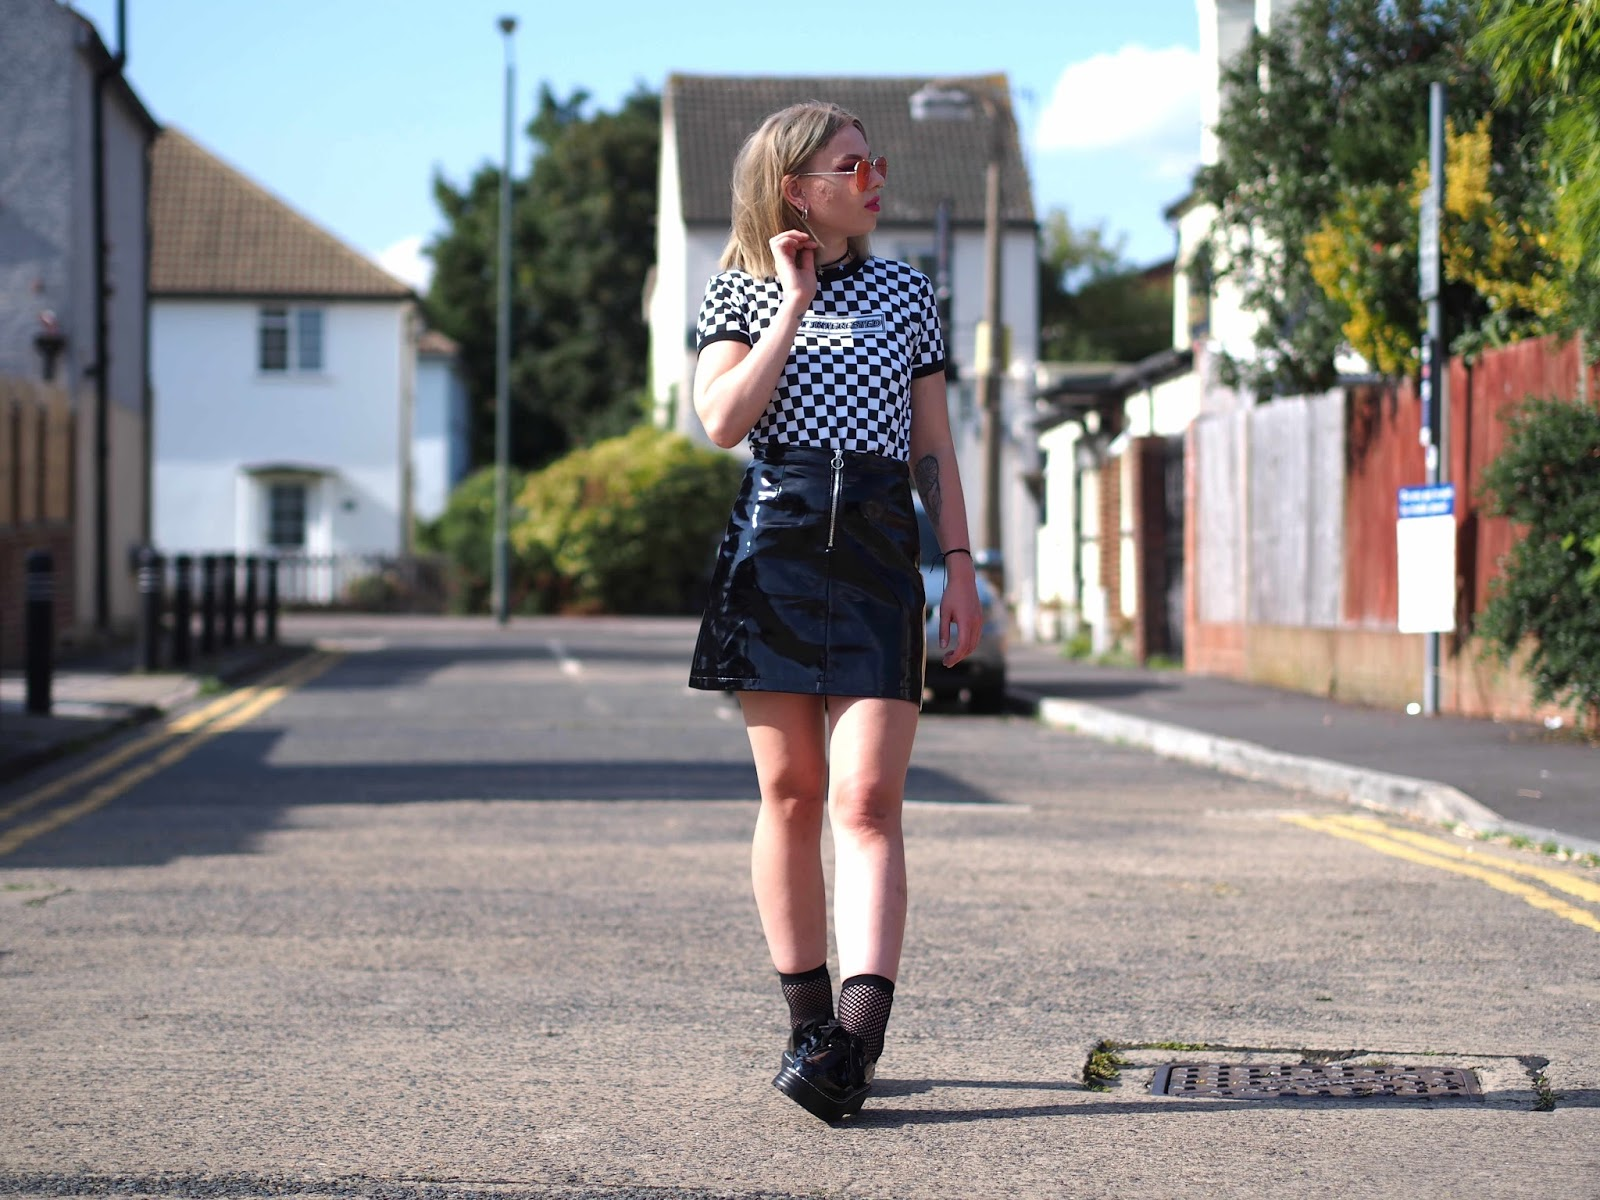 fashion trend 2017, 2017 ss fashion trend, grunge outfit ideas, grunge outfits, grunge blogger, uk fashion blogger, street style blogger, london fashion blogger